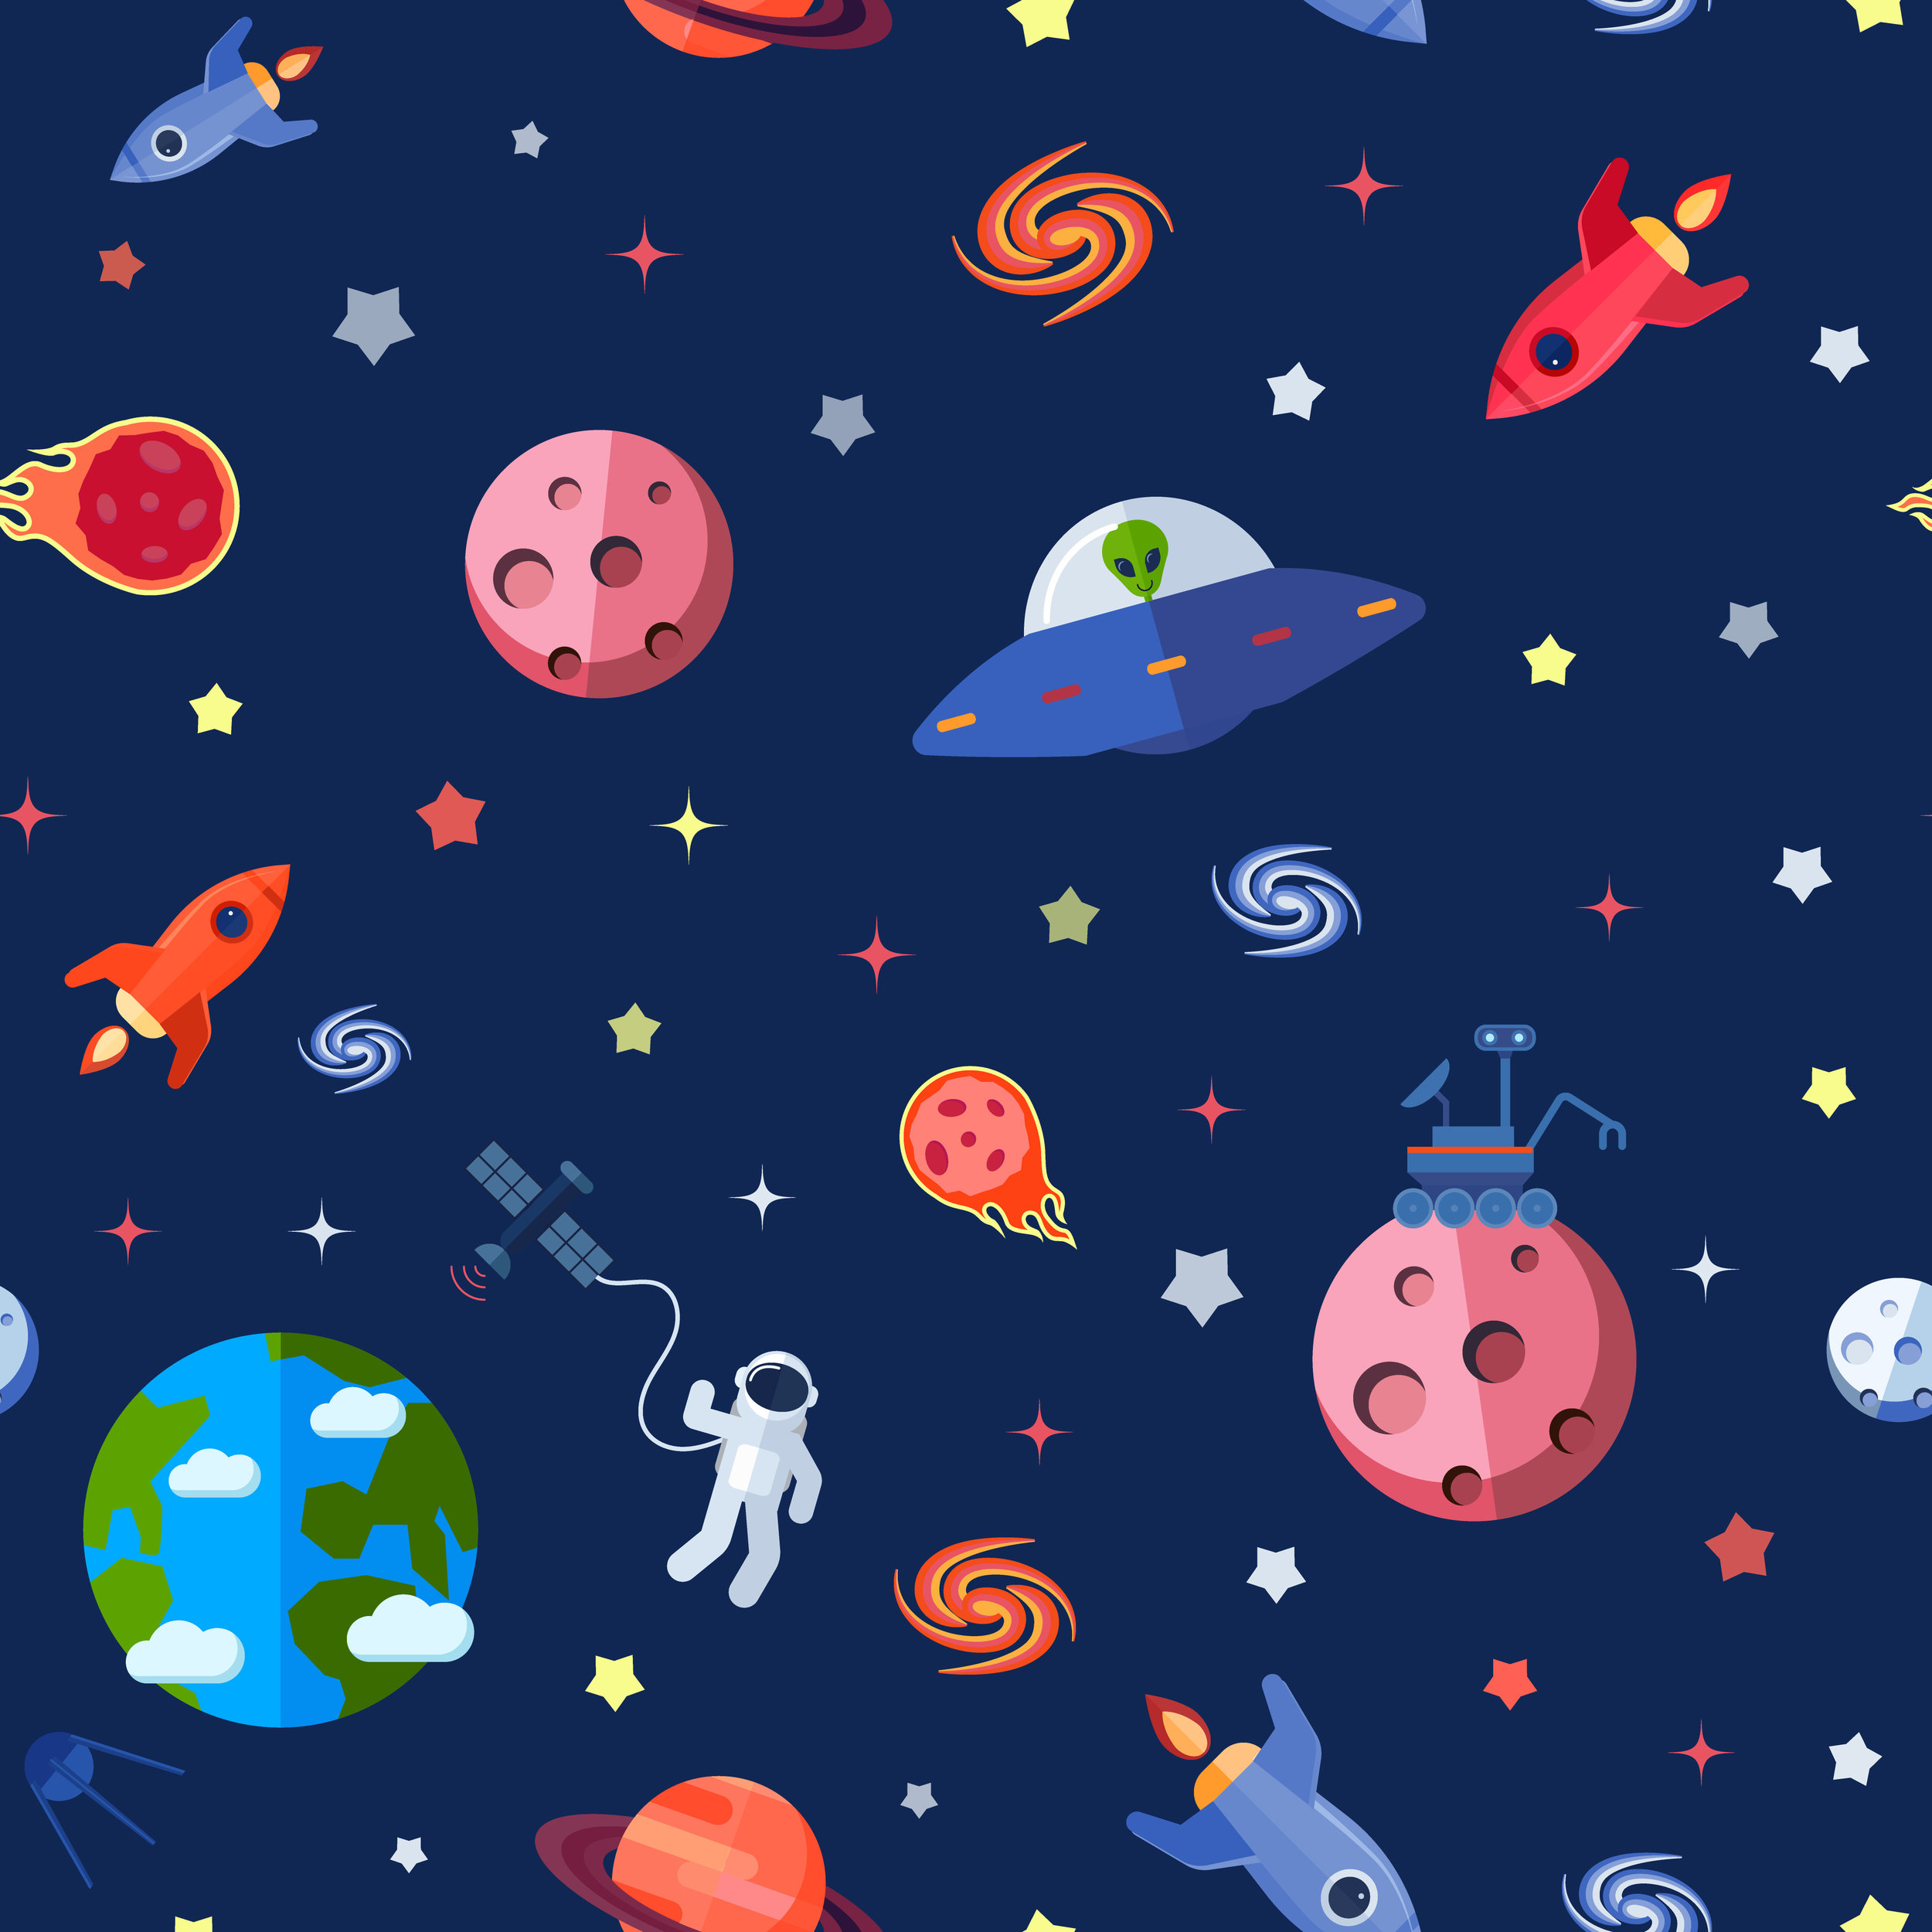 Out of This World Space Adventure Image.jpg